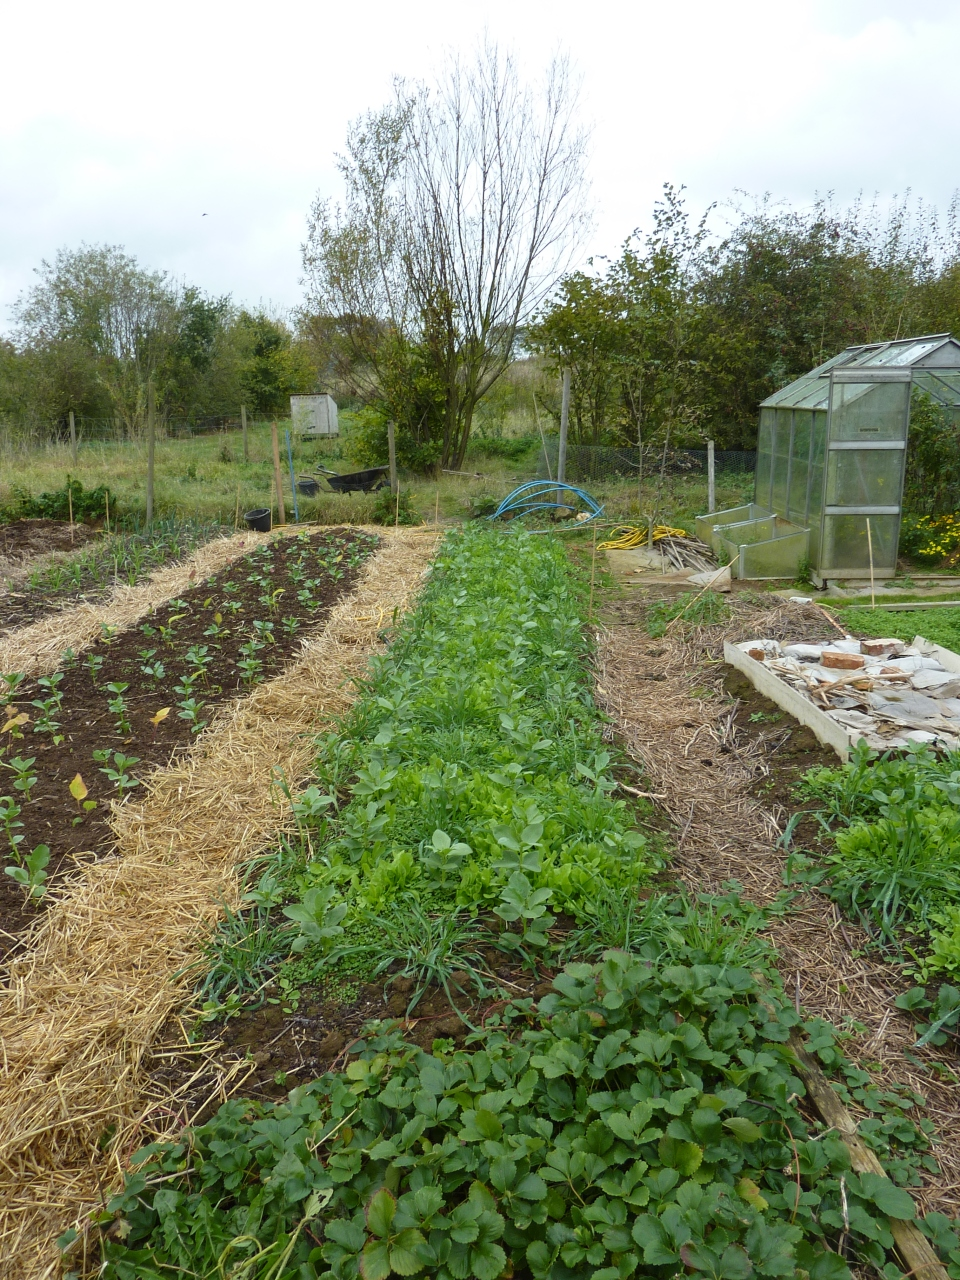 Rye, Broad Bean, White Clover, and Chicory polyculture